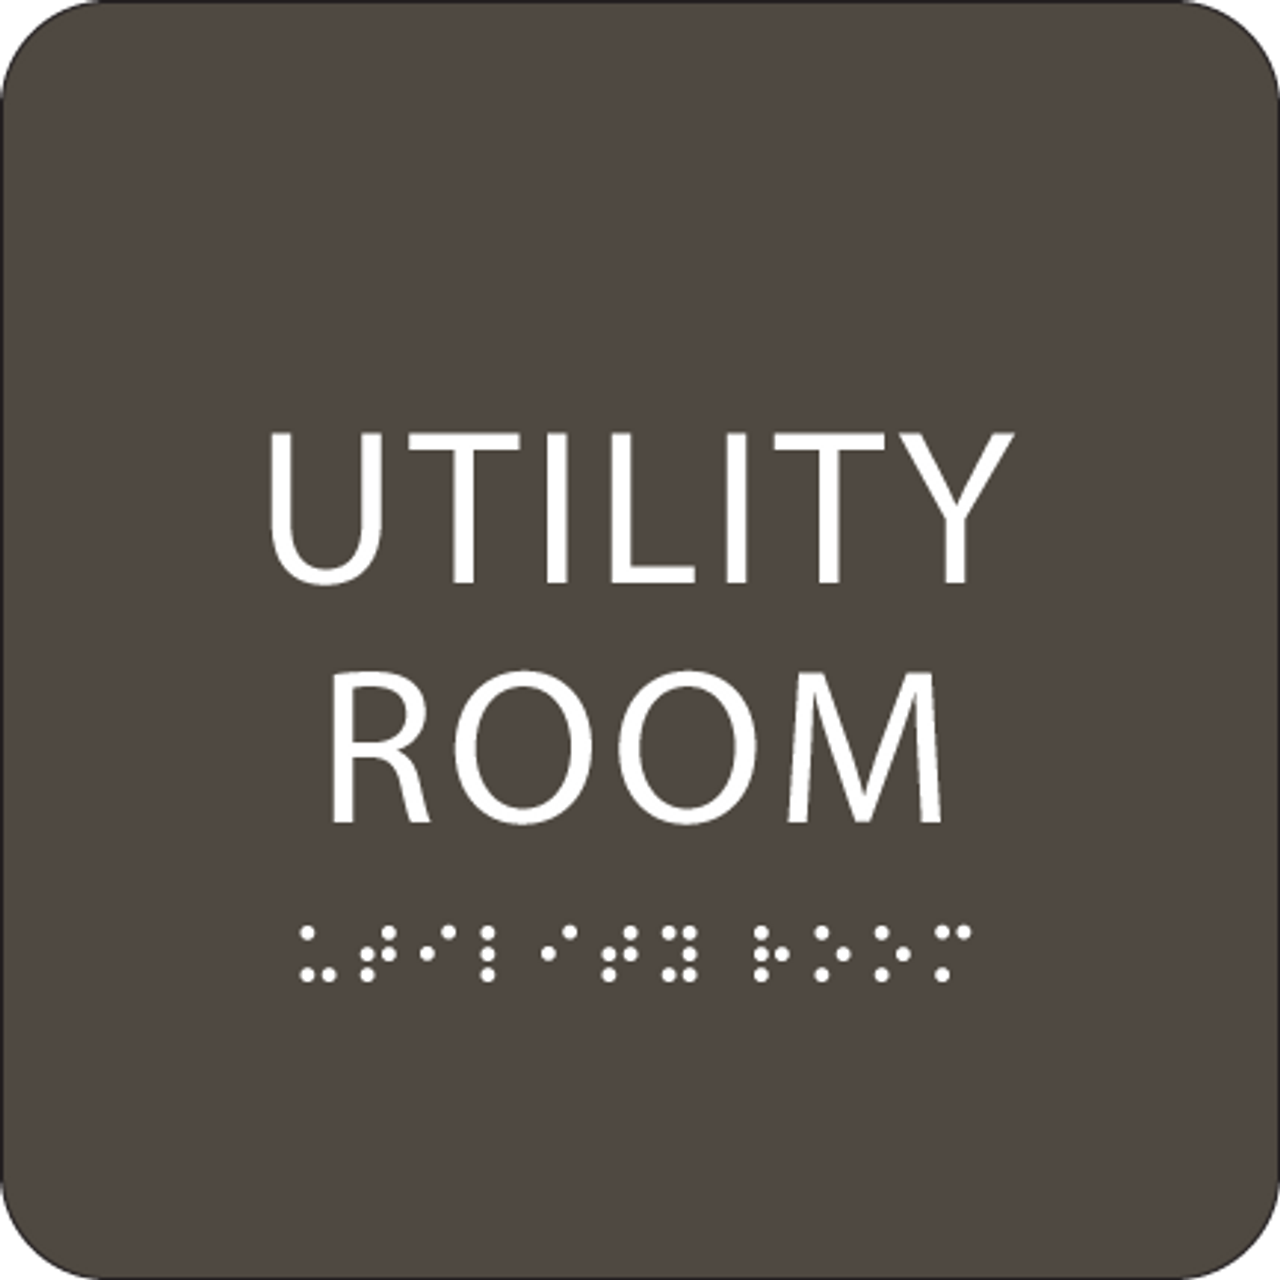 Olive Utility Room ADA Sign